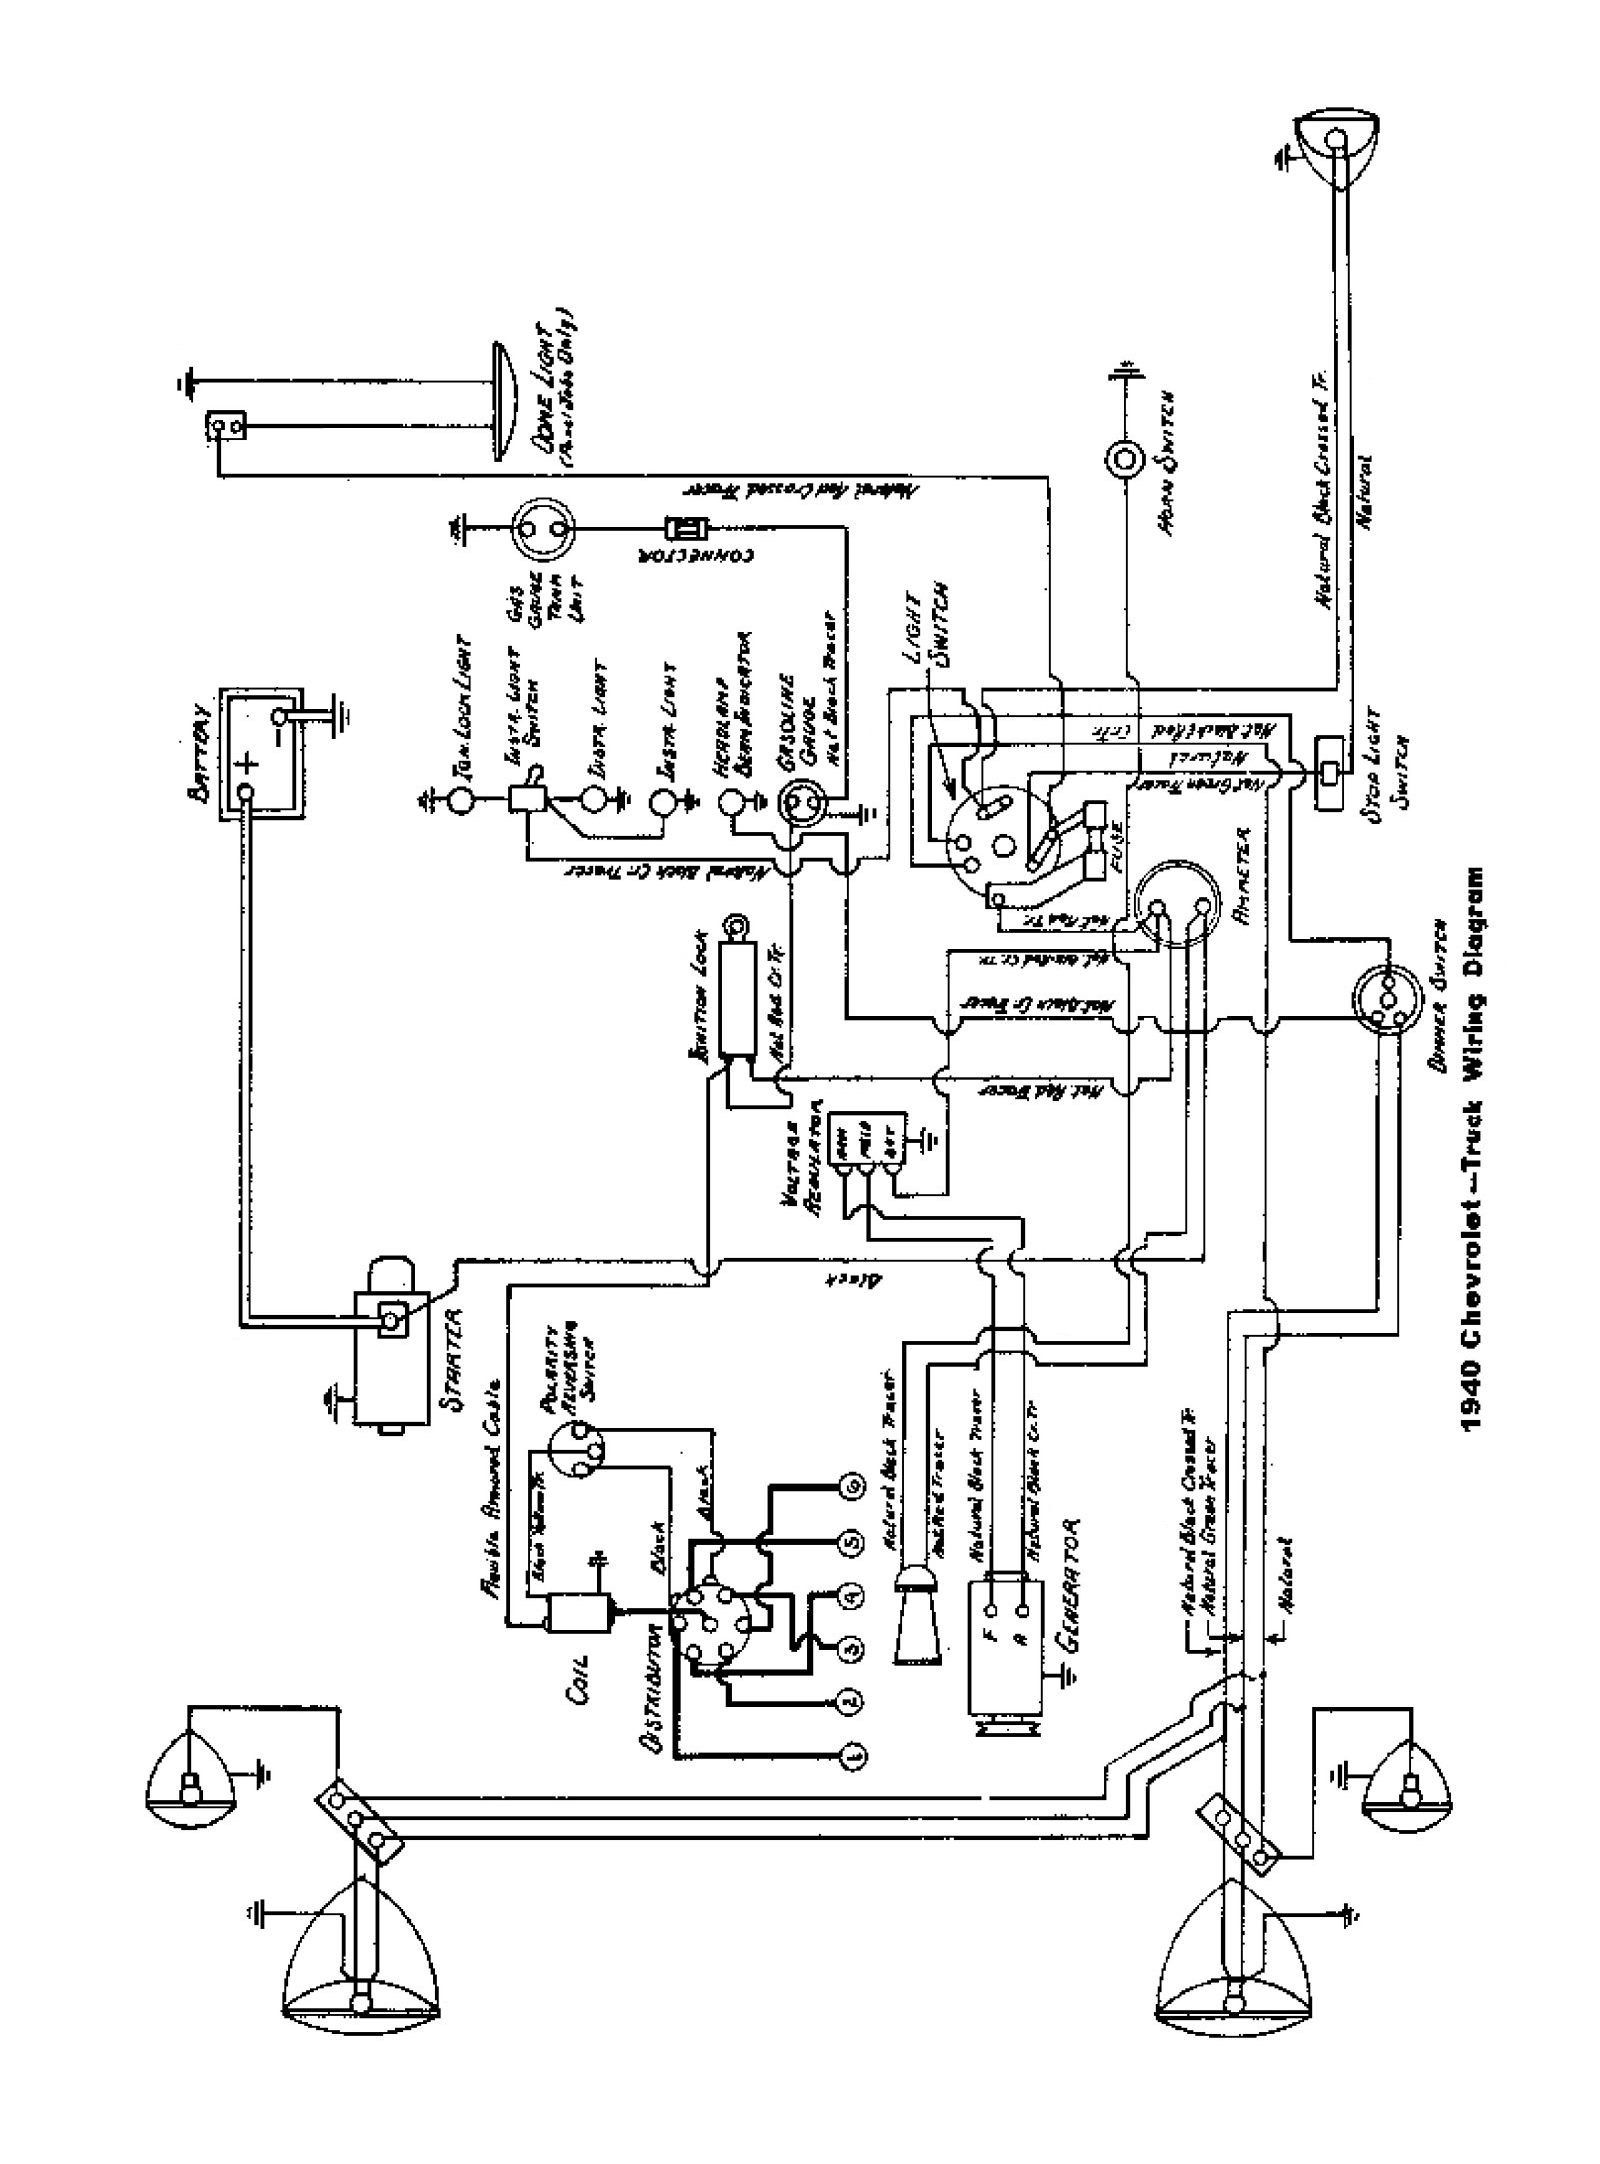 1951 Ford Wiper Diagram - Data Wiring Diagram Today - Windshield Wiper Motor Wiring Diagram